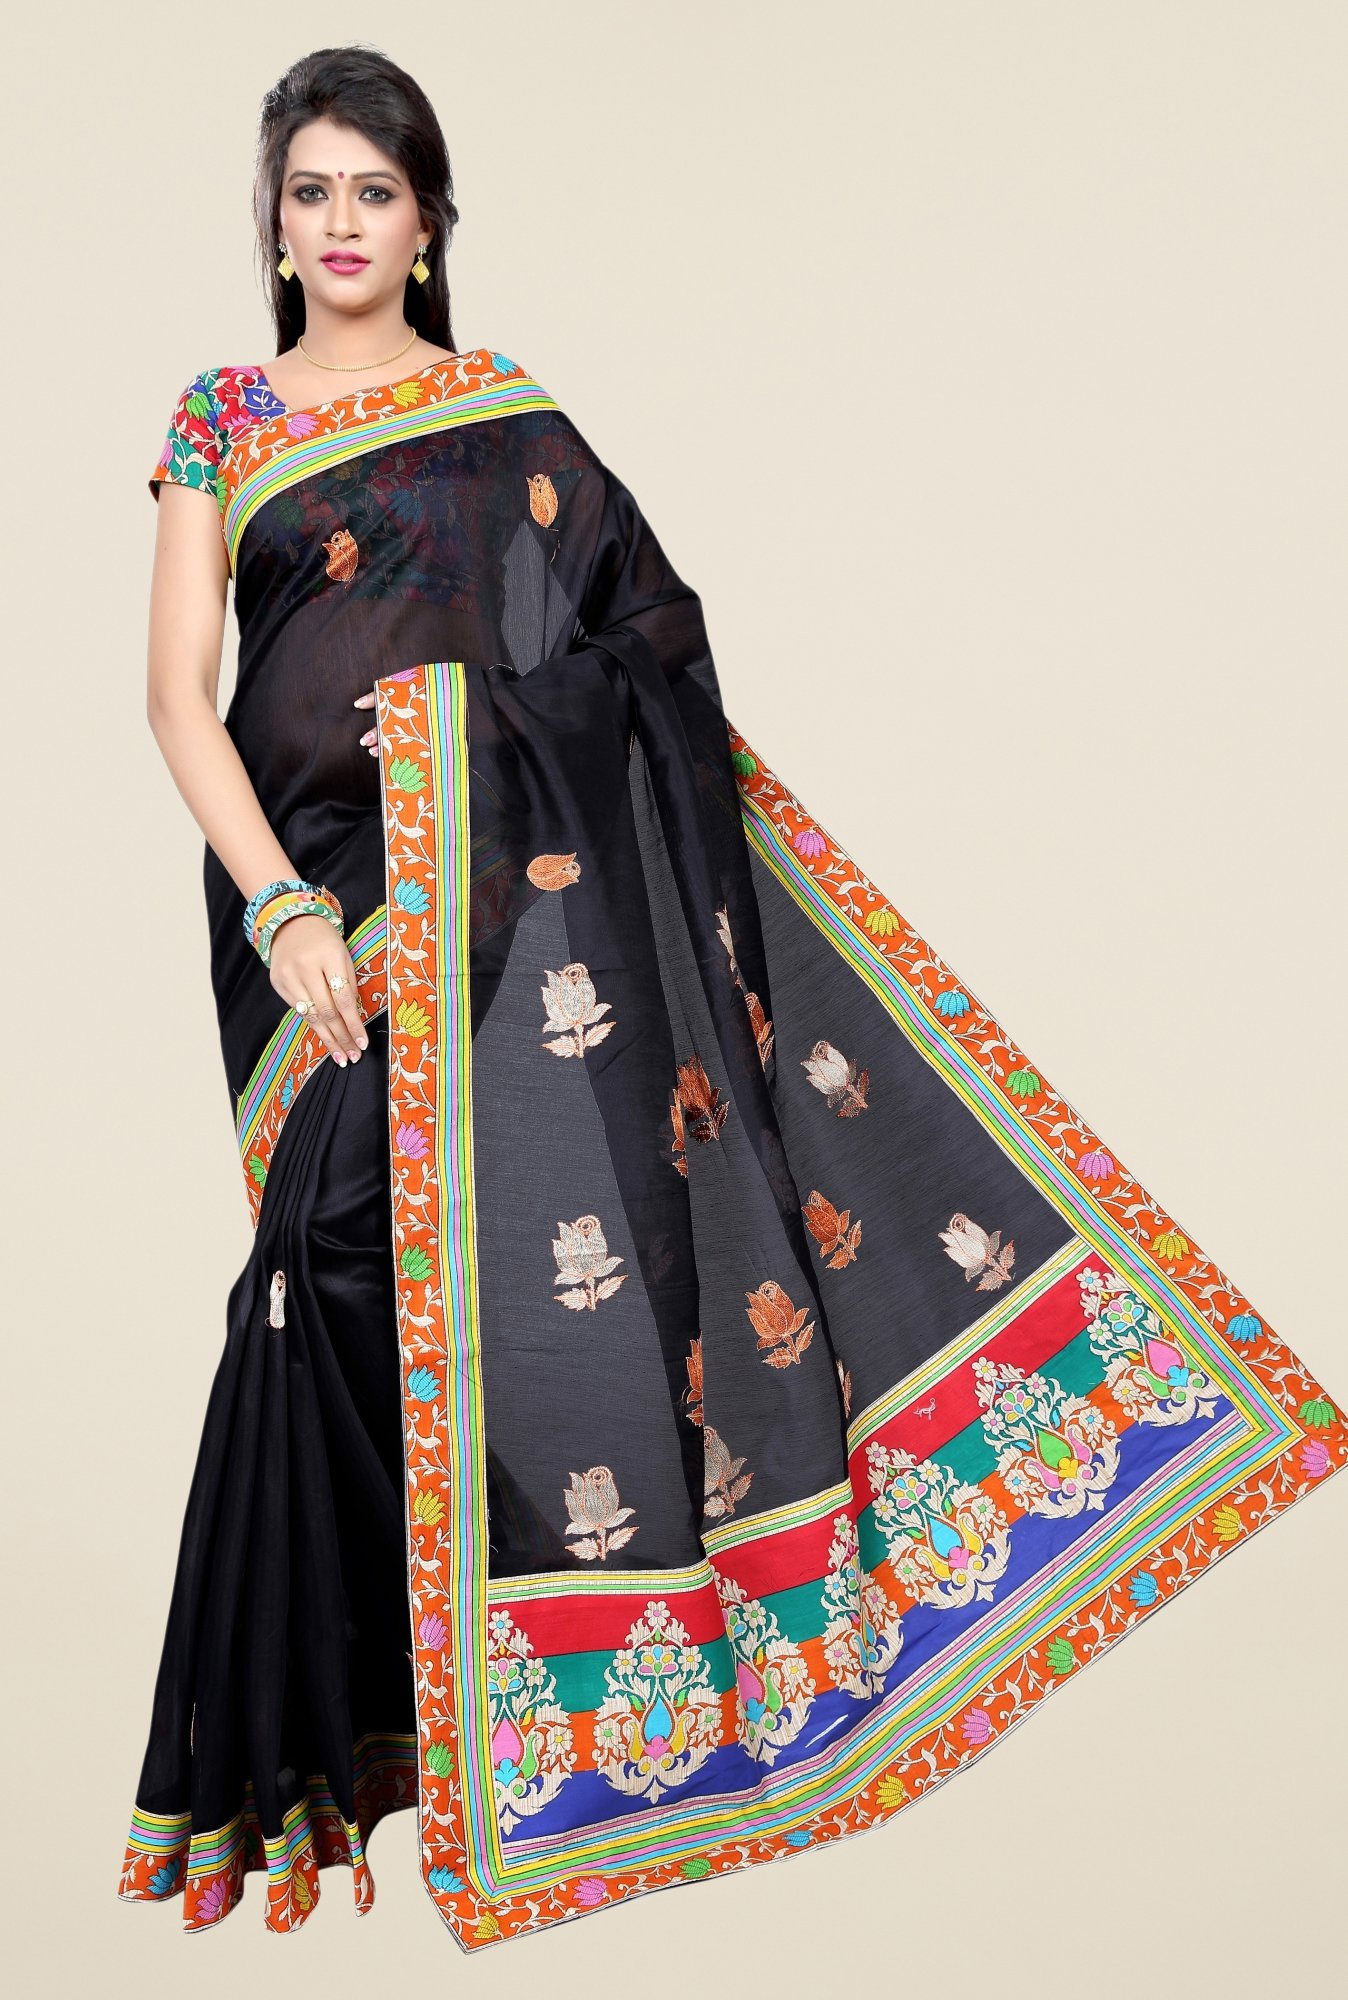 Triveni Black Embroidered Blended Cotton Saree